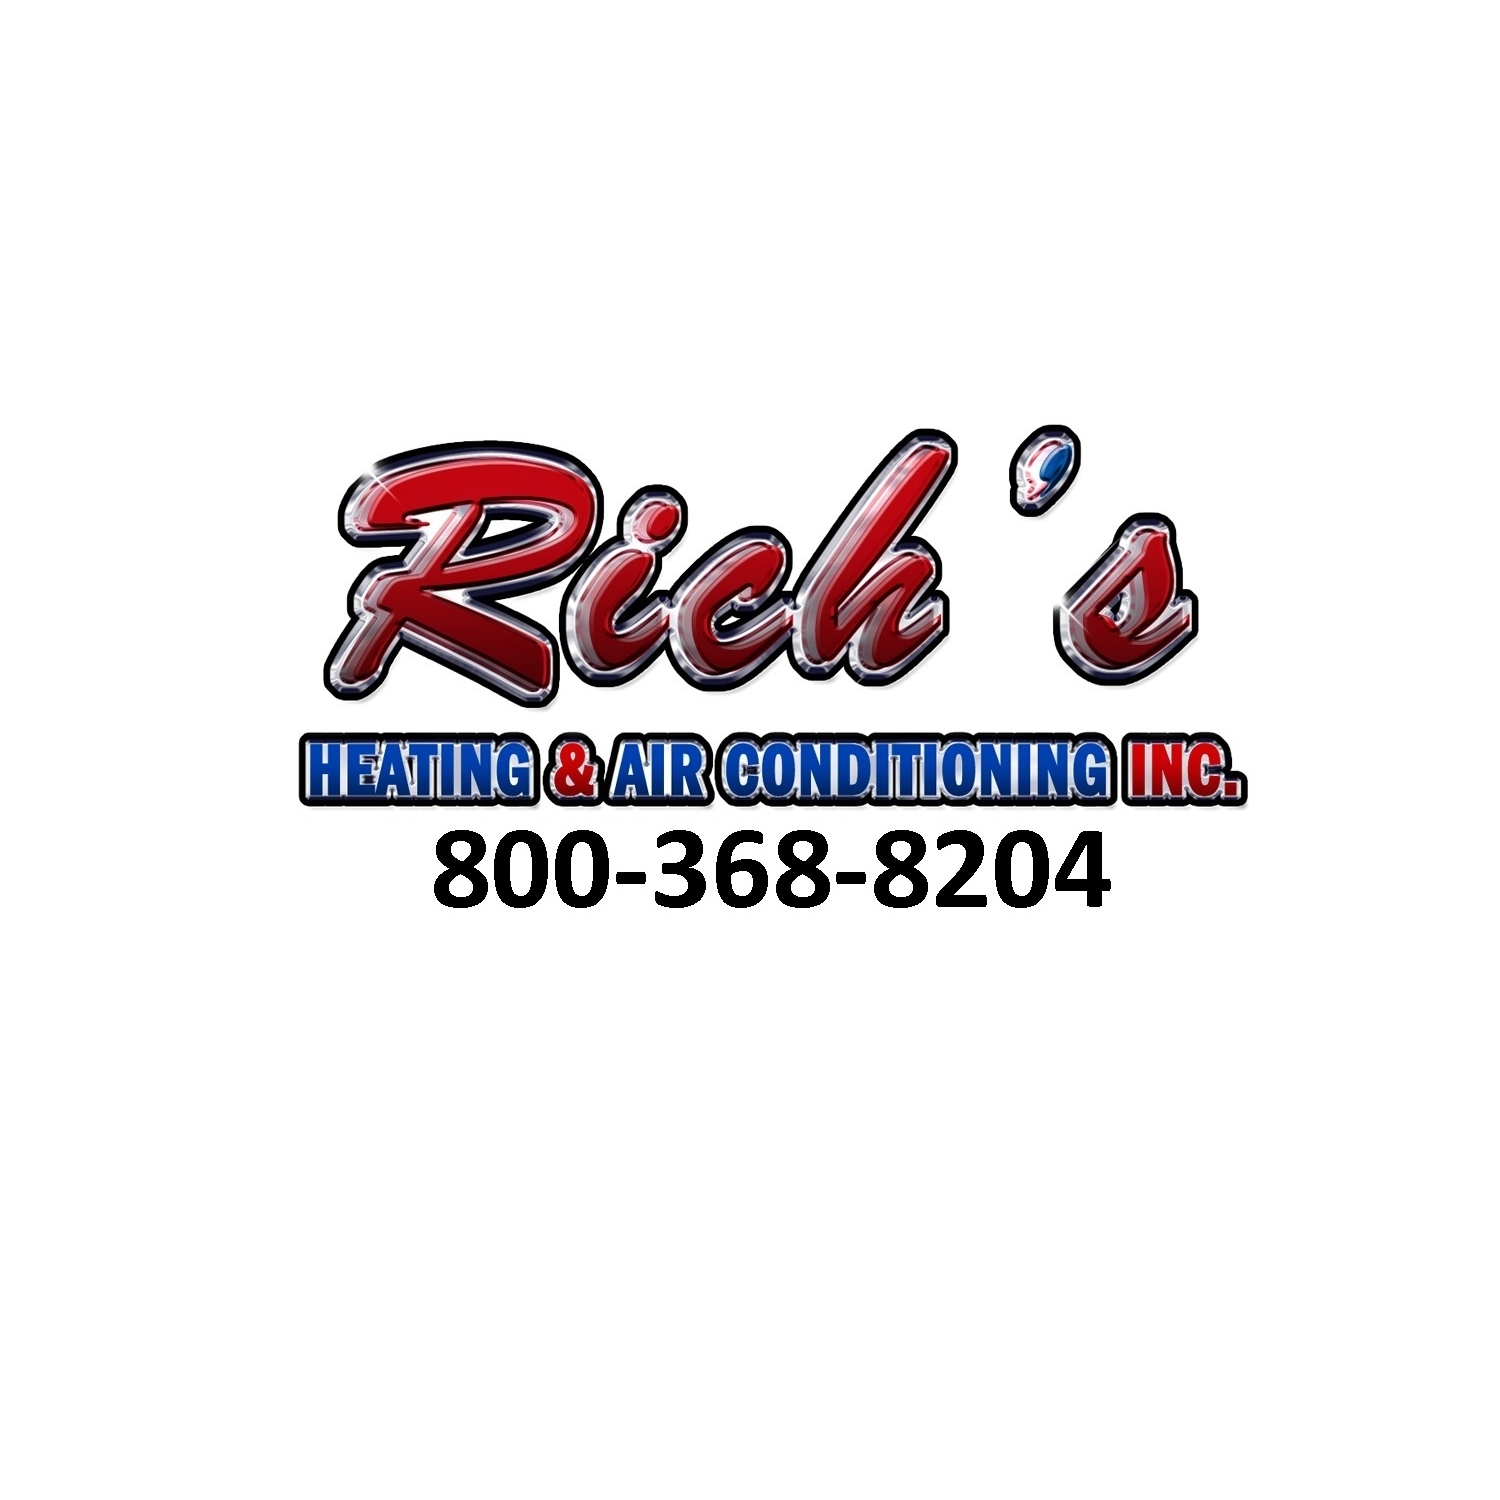 Rich's Plumbing Heating and Air Conditioning Inc.